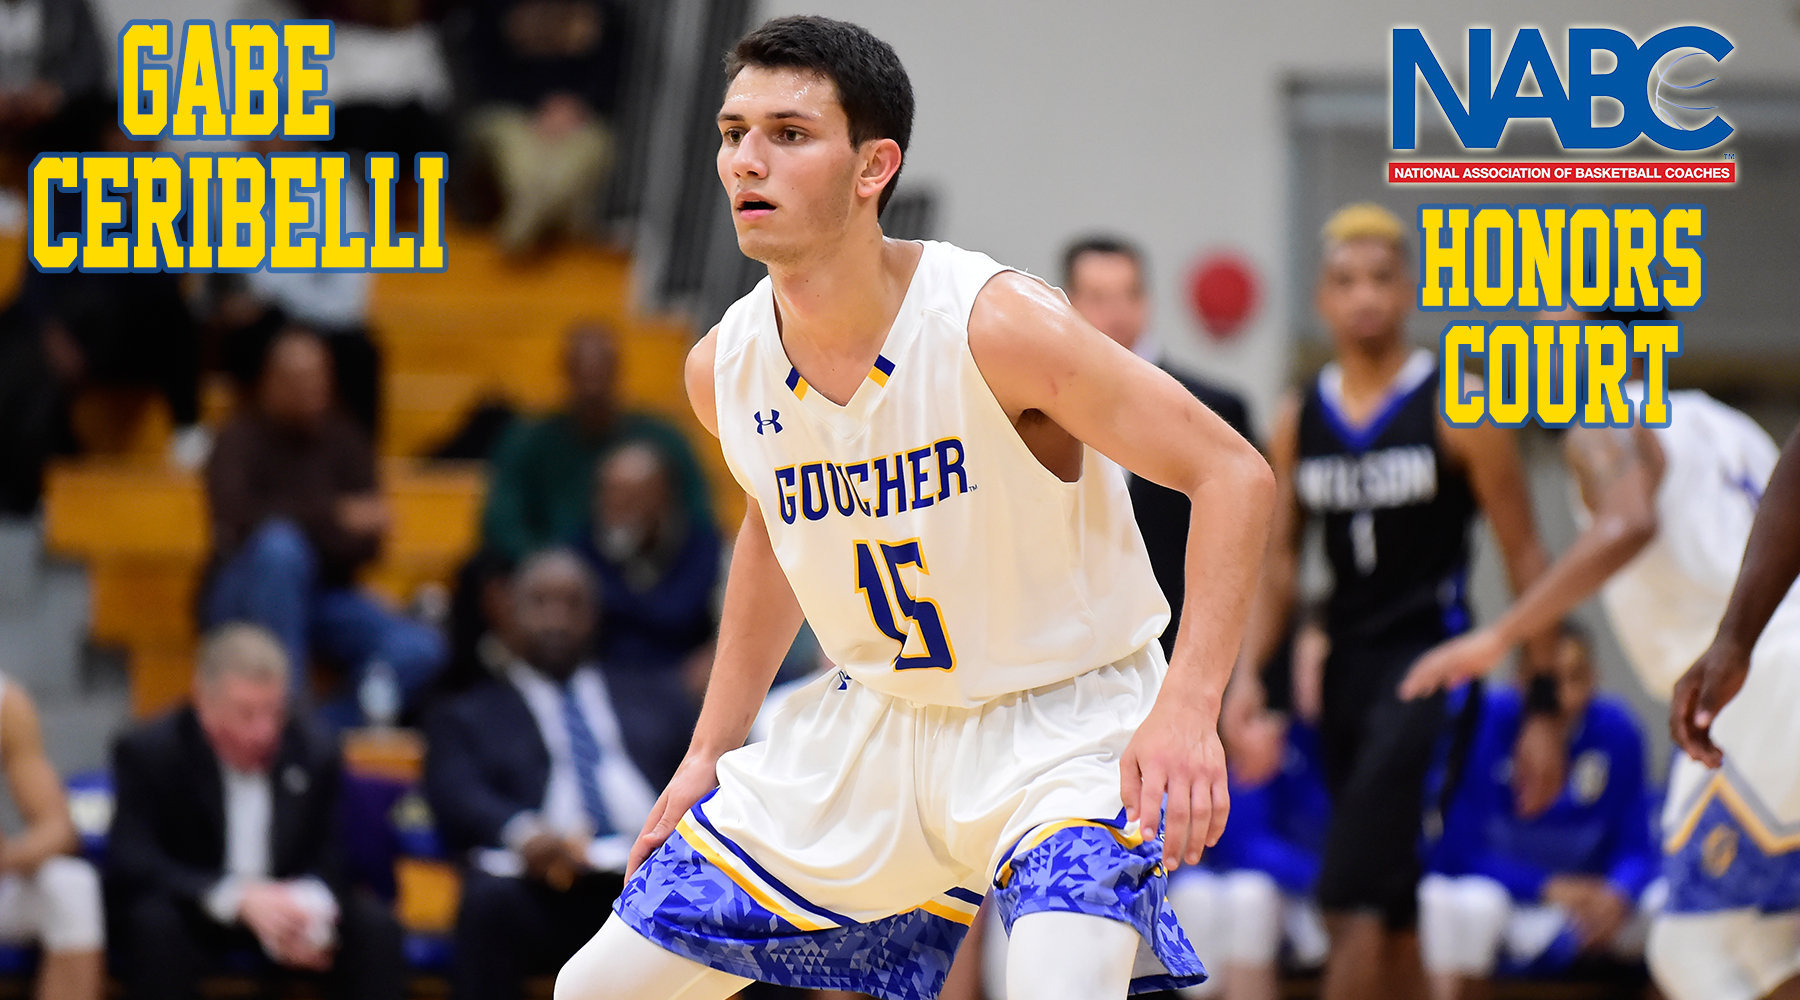 Men's Basketball's Gabe Ceribelli Named to '17-18 NABC Honors Court